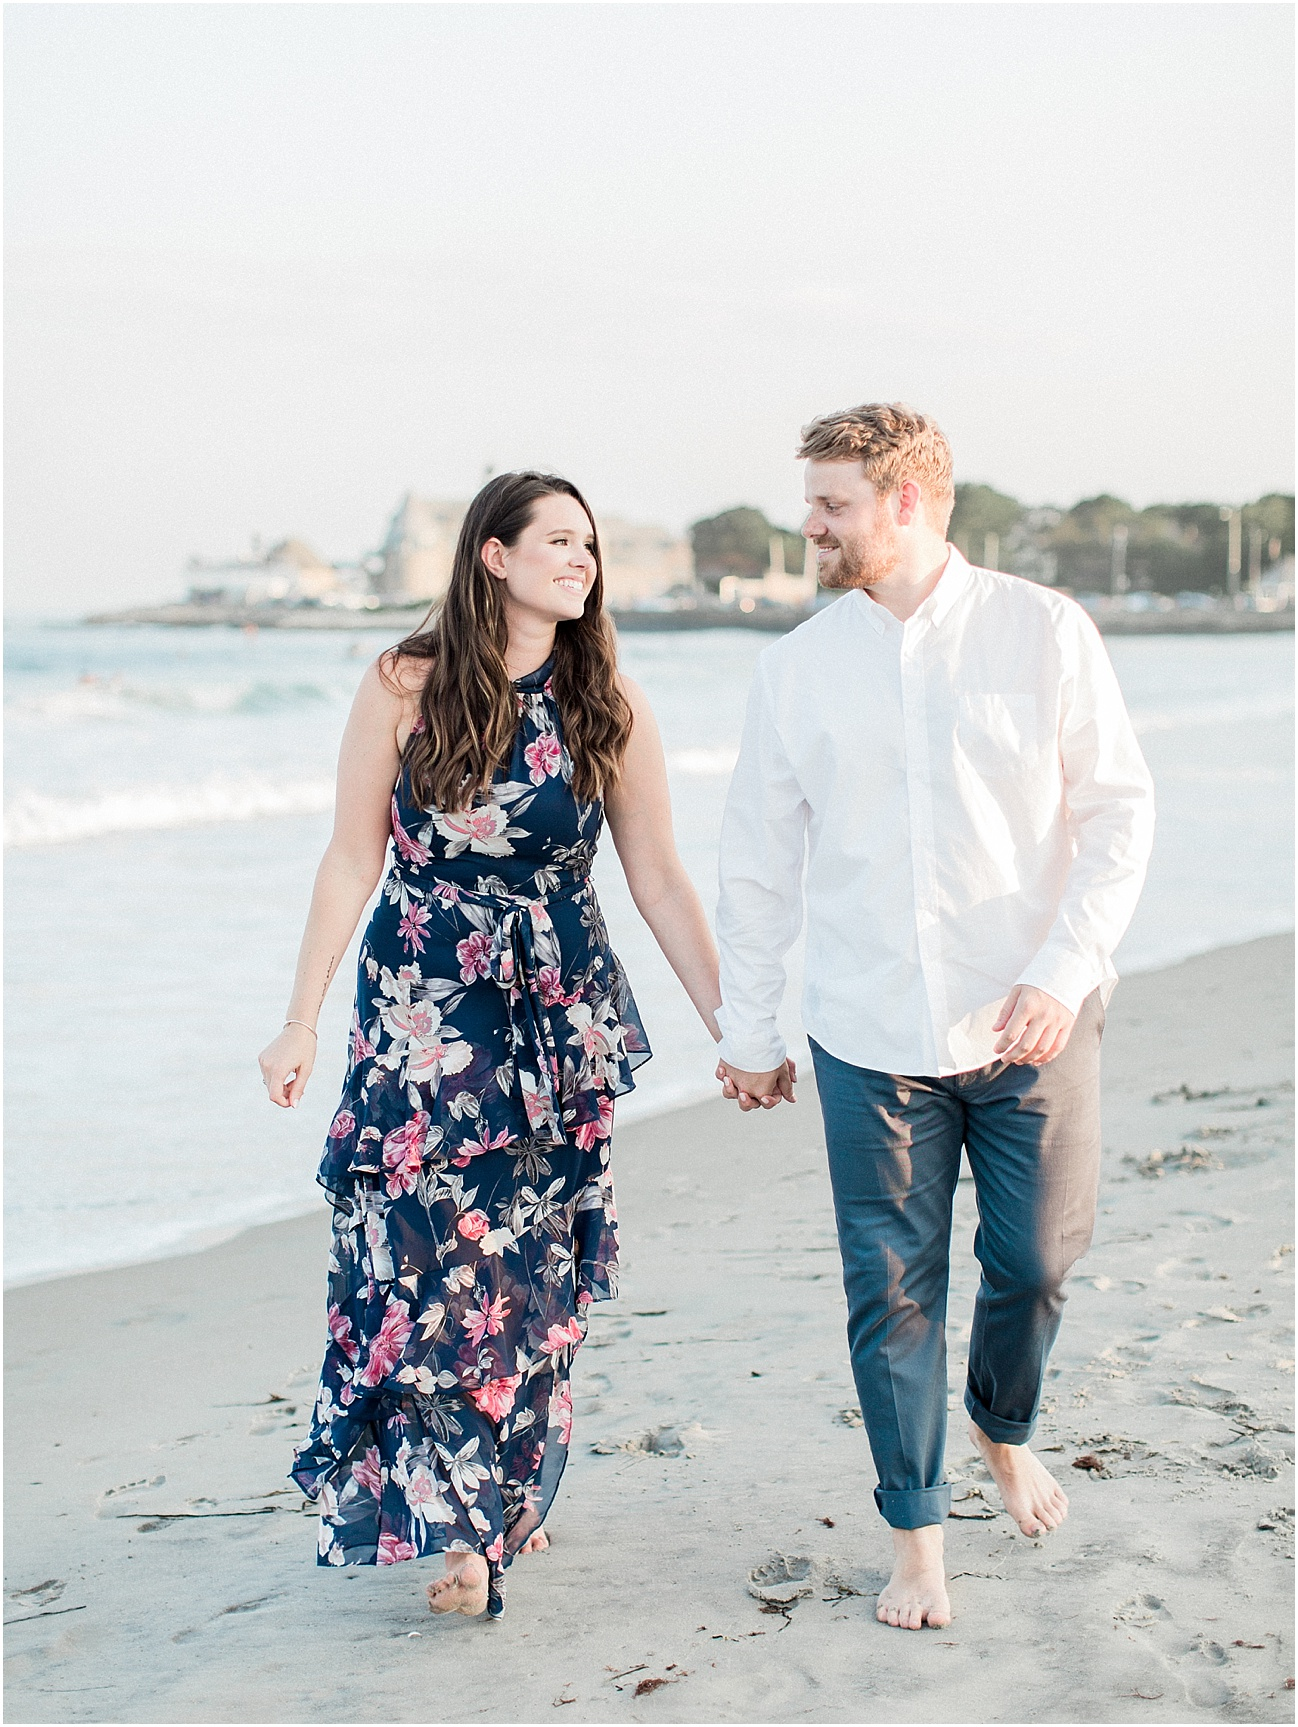 heather_chris_narragansett_beer_cliff_walk_beach_rhode_island_ri_cape_cod_boston_wedding_photographer_meredith_jane_photography_photo_0749.jpg